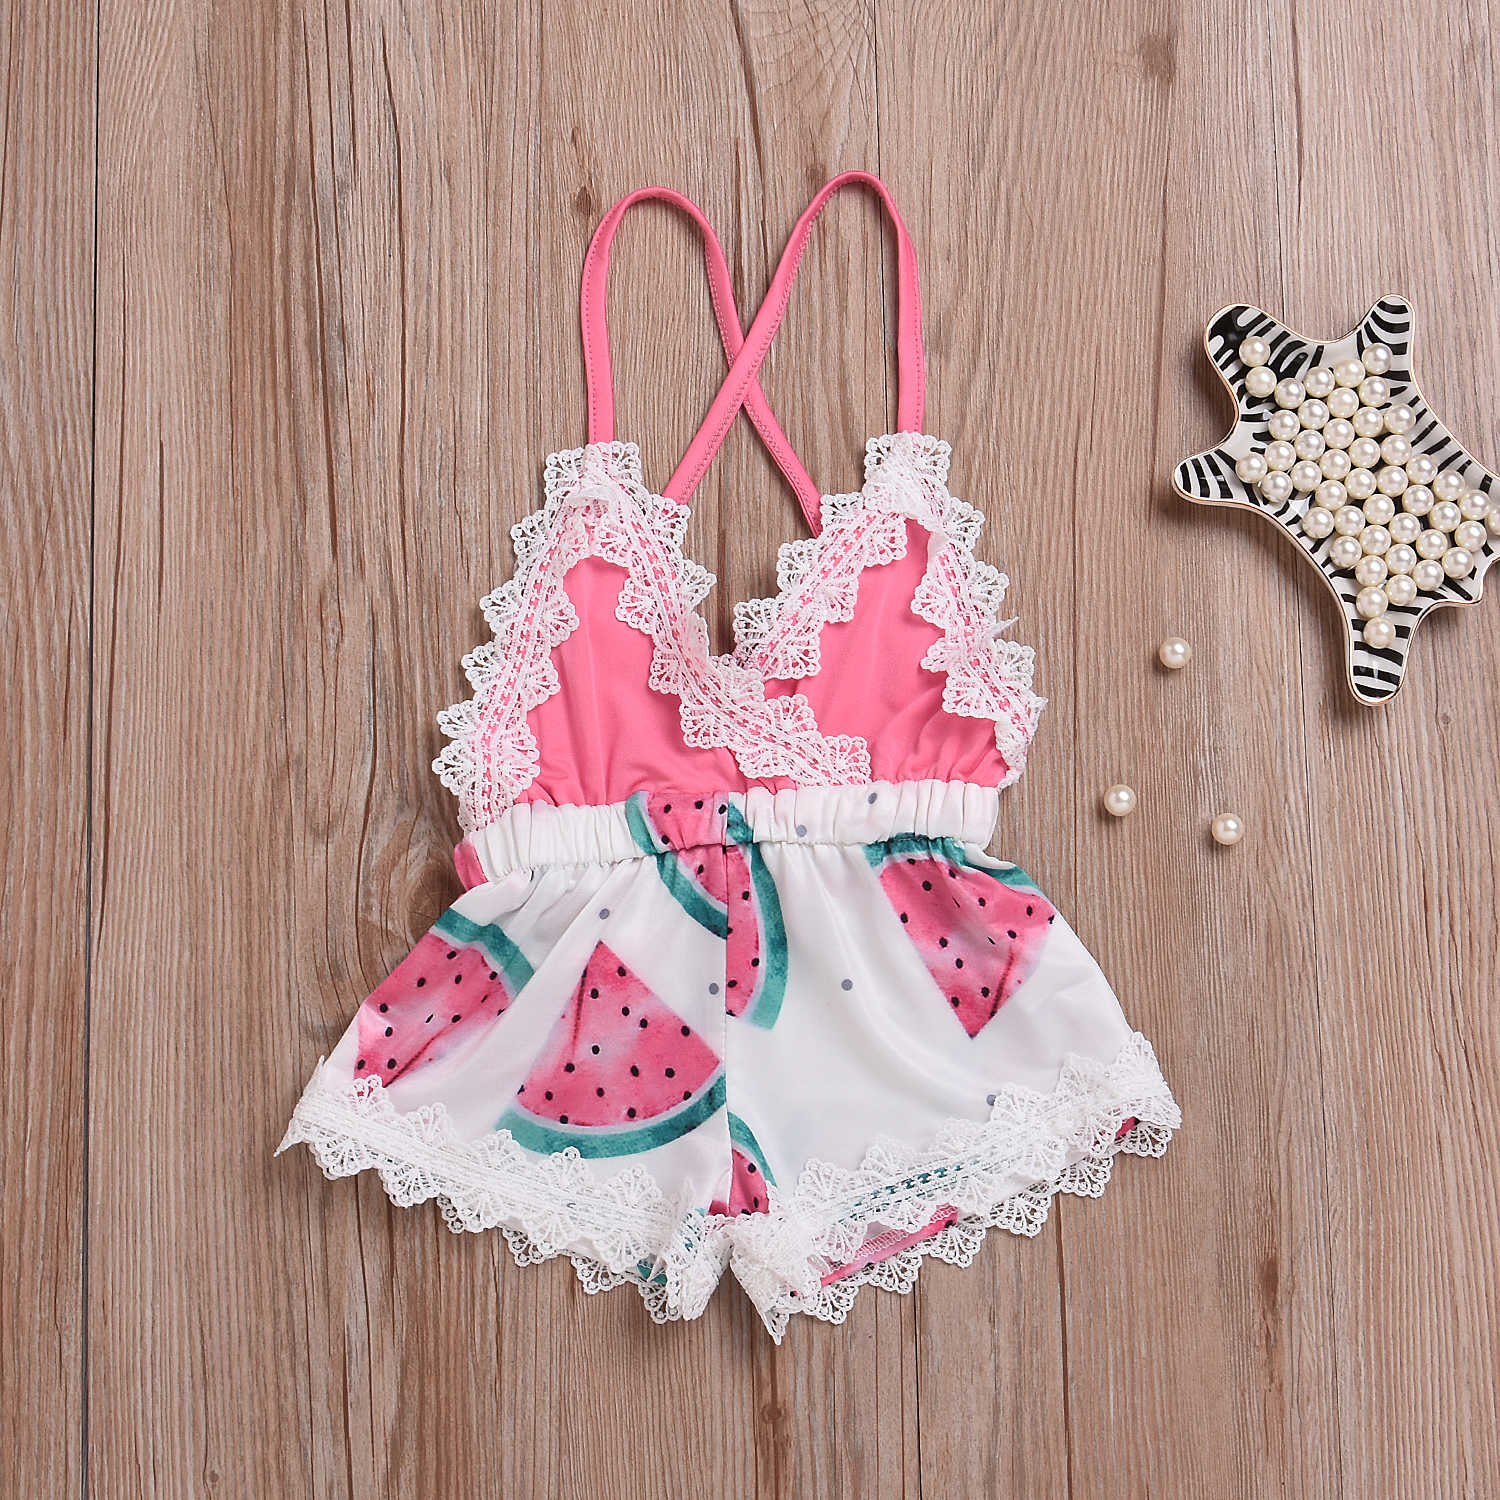 Newborn Baby Girl Clothes Sleeveless Strapped Watermelon Printed Summer Lace Romper Baby Toddler Baby Clothes Outfit 0-4 Years